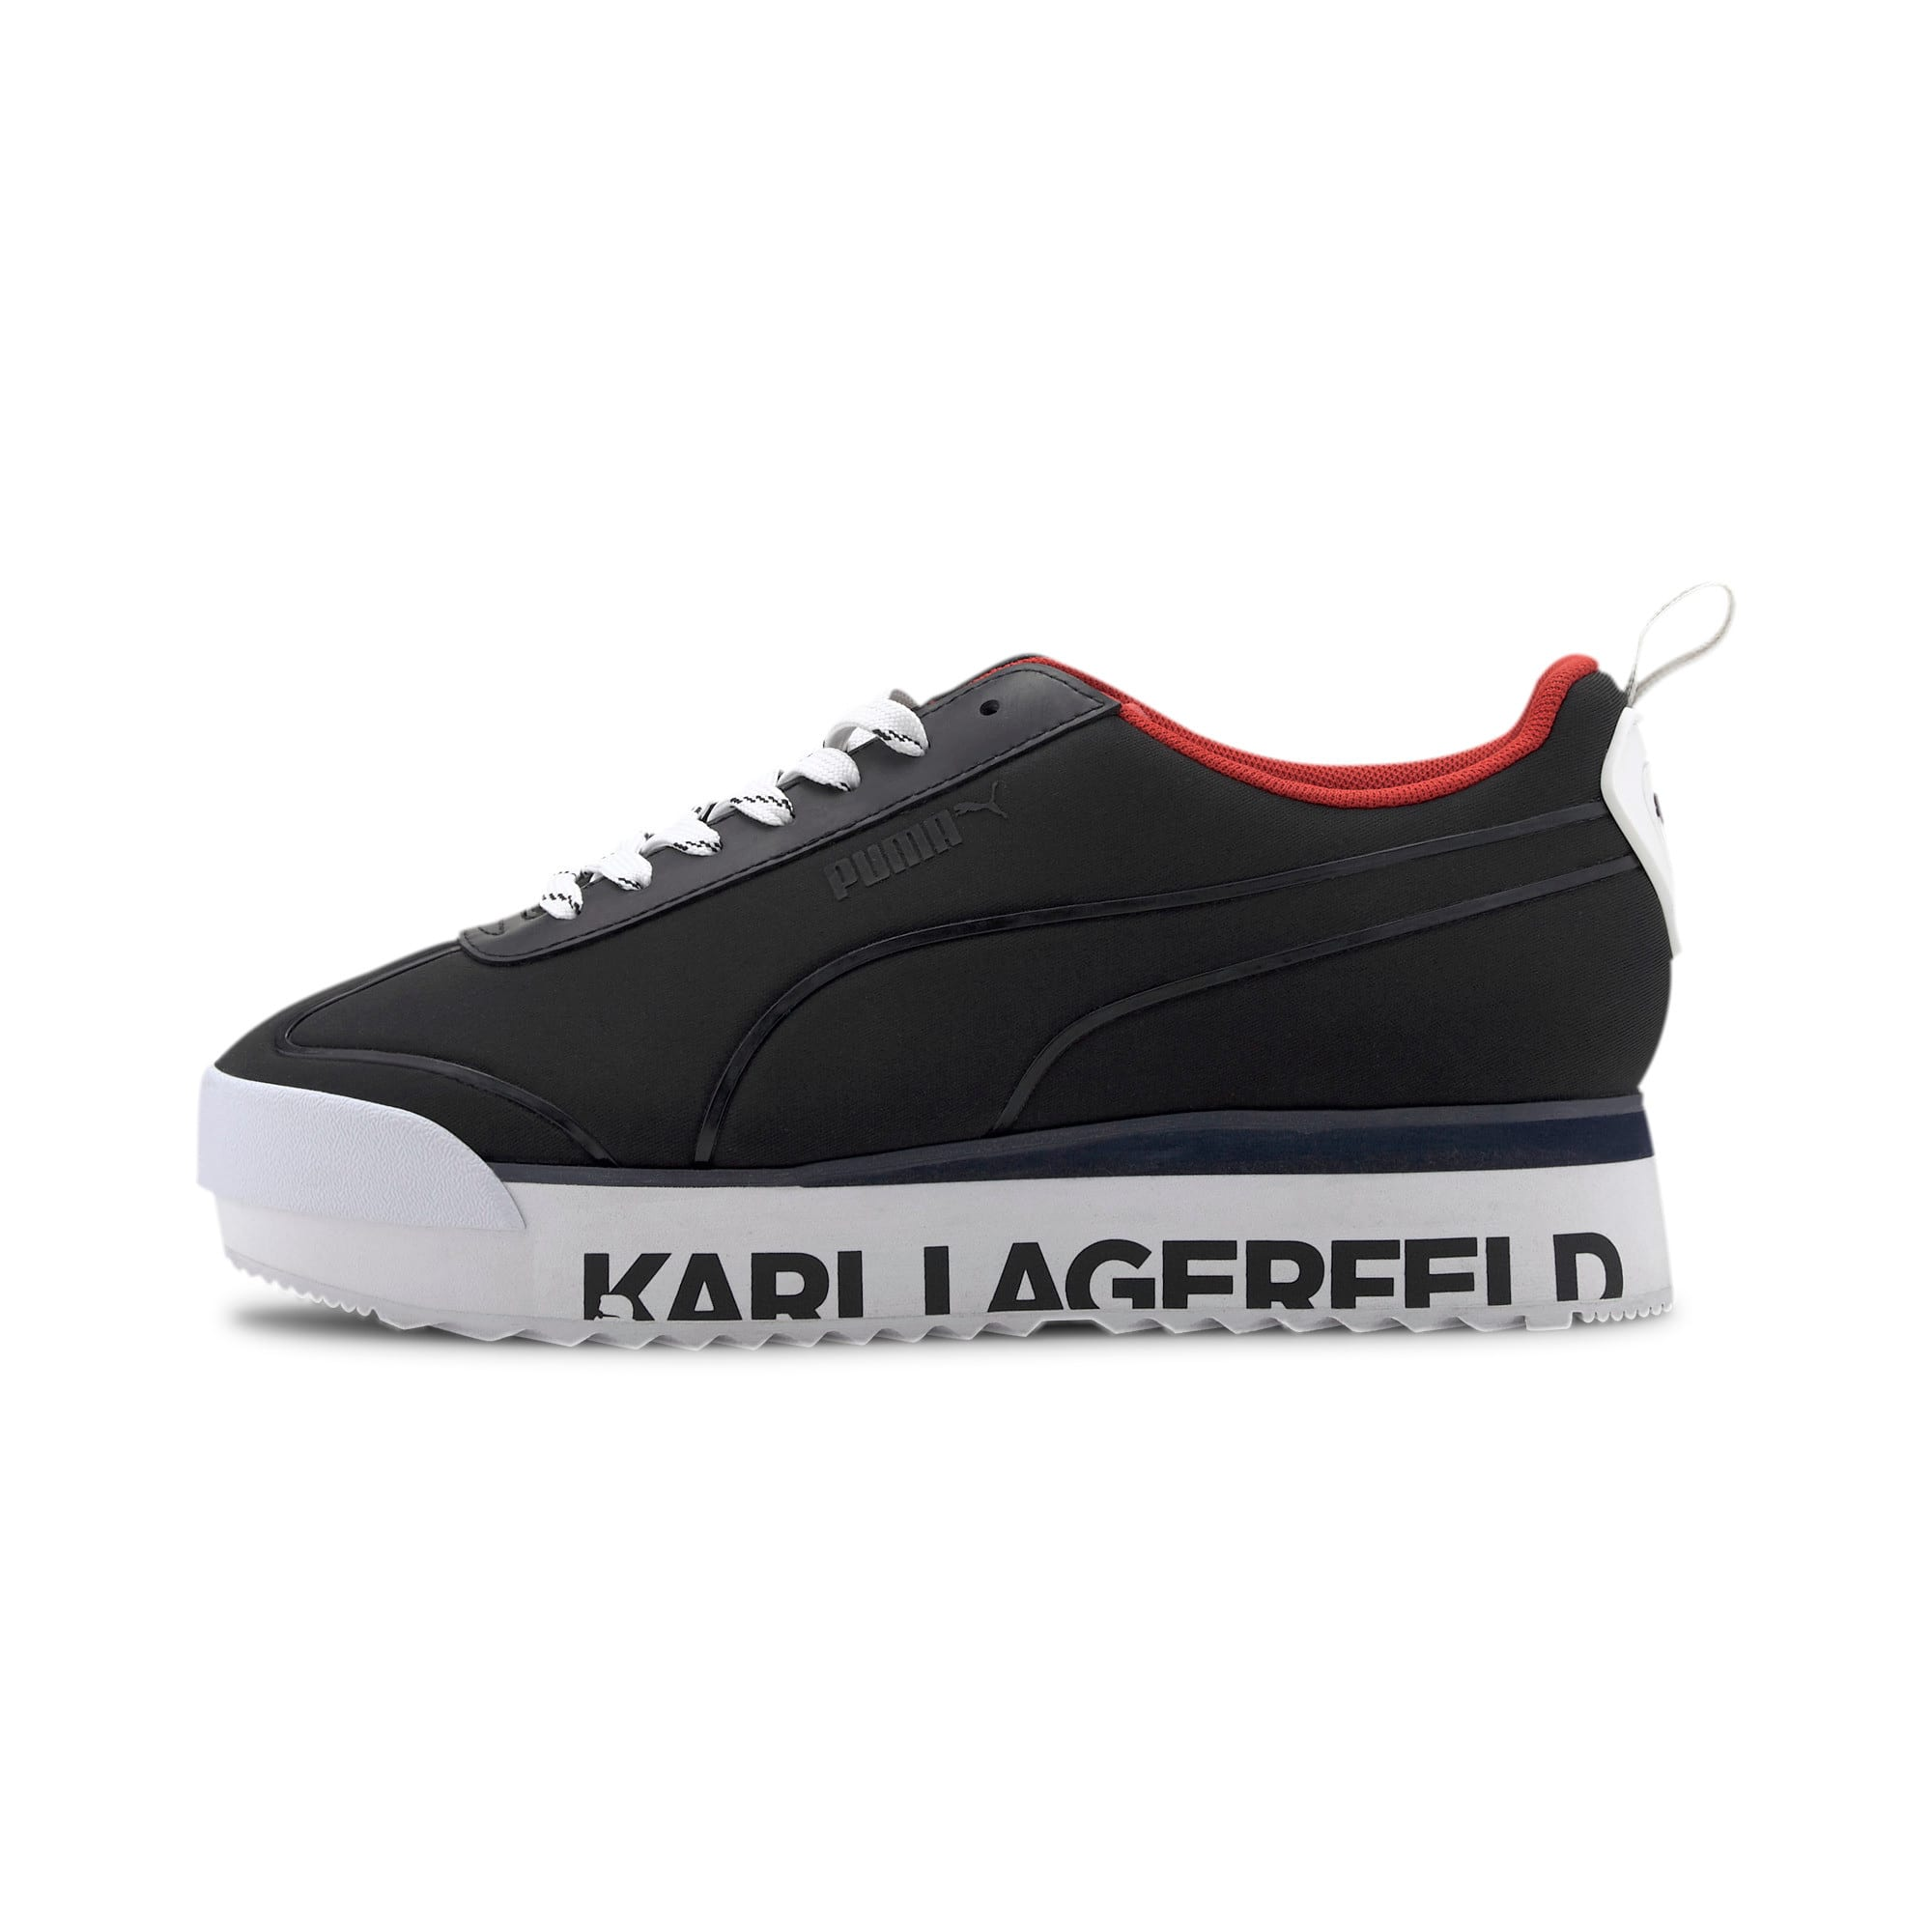 Thumbnail 1 of PUMA x KARL LAGERFELD Roma Amor Women's Trainers, Puma Black-Puma Black, medium